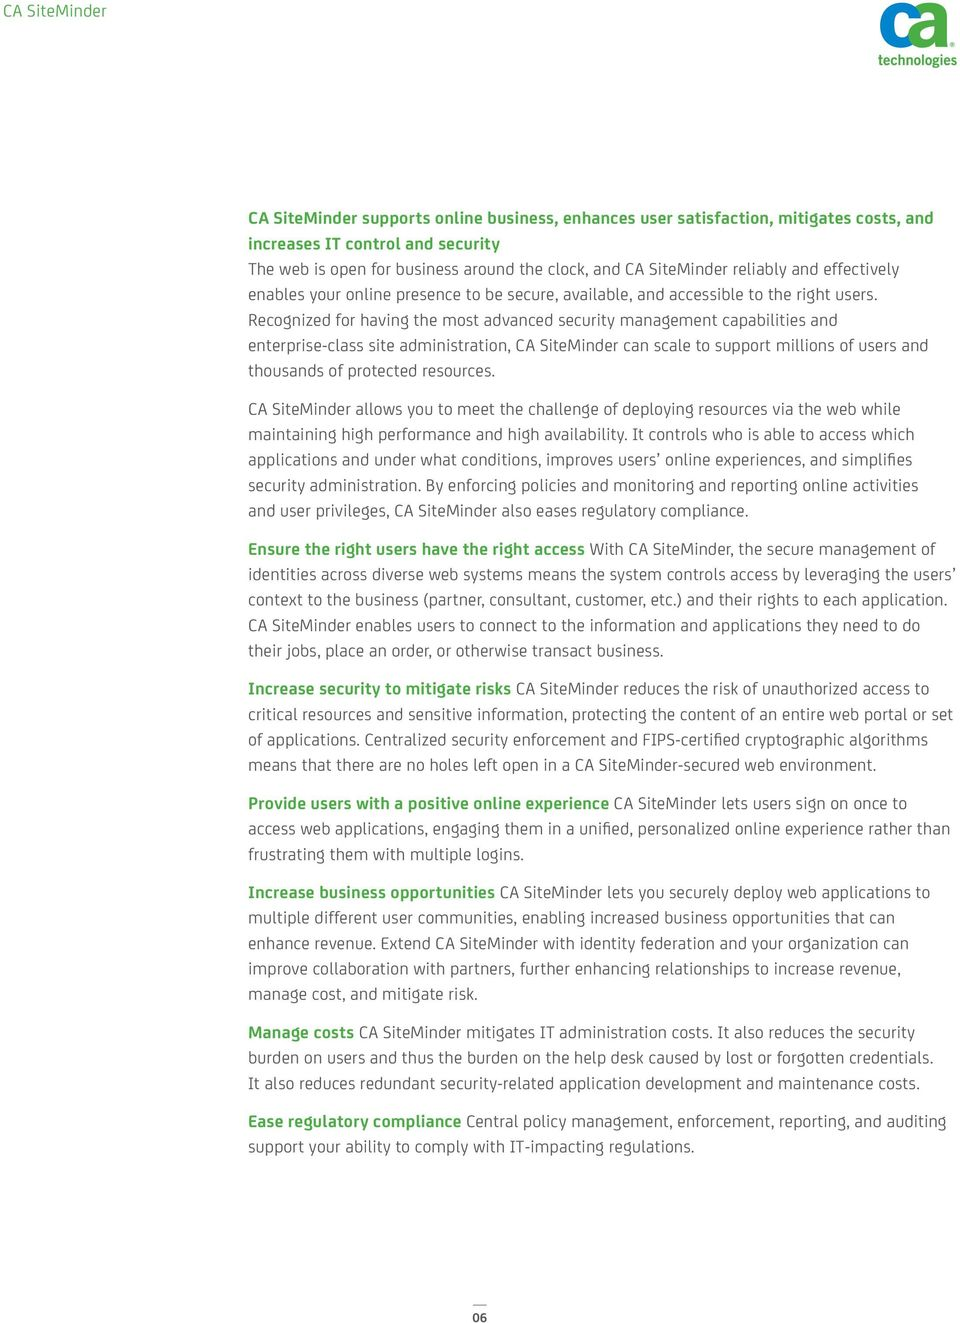 Recognized for having the most advanced security management capabilities and enterprise-class site administration, CA SiteMinder can scale to support millions of users and thousands of protected